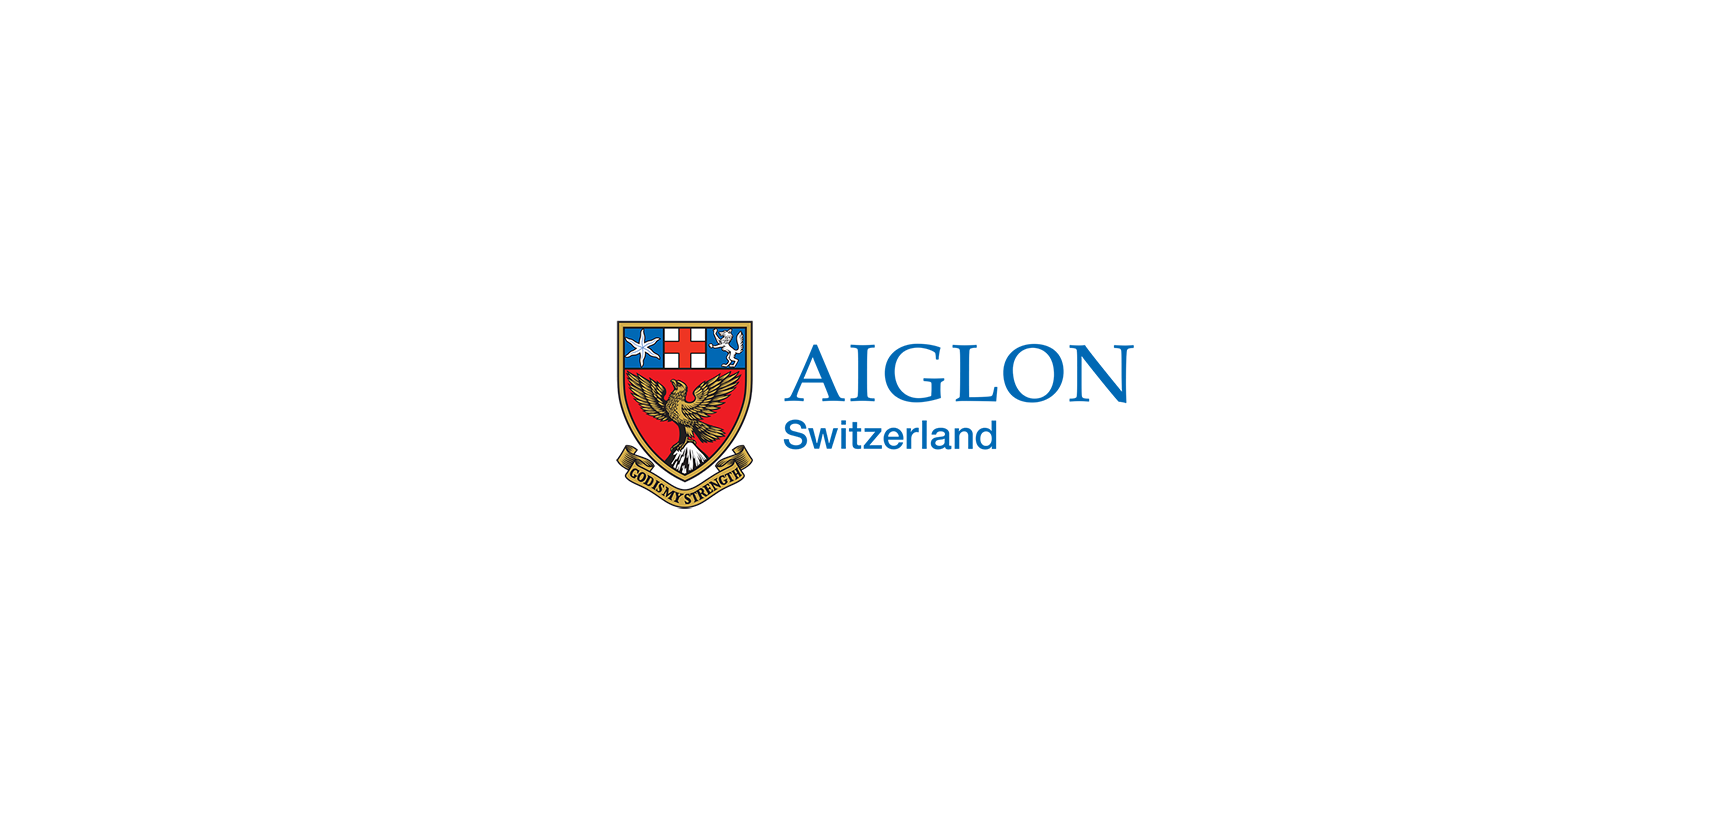 Aiglon Switzerland